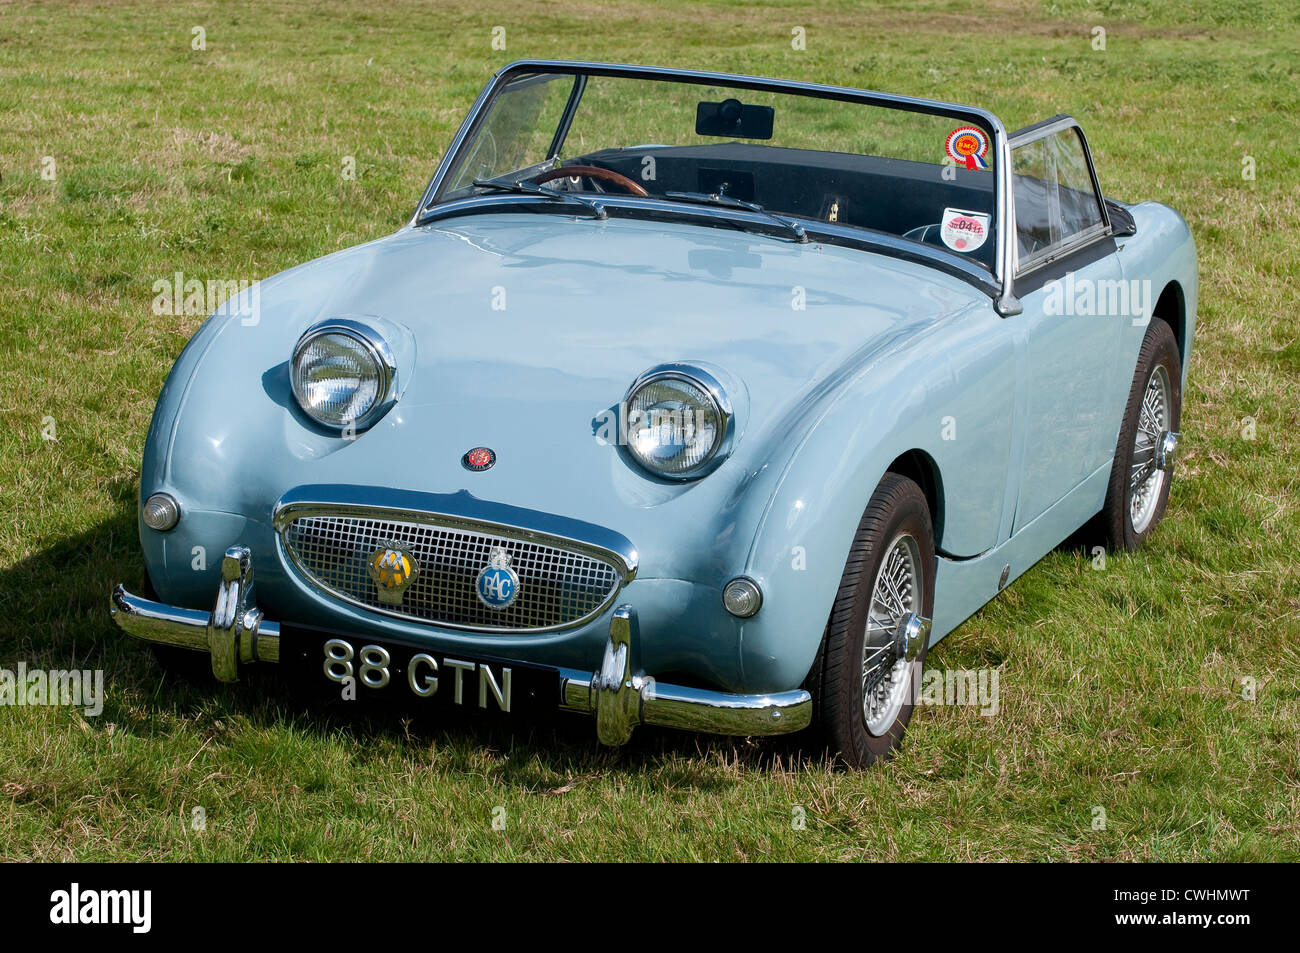 Austin-Healey Frogeye Sprite open top classic sports car. - Stock Image